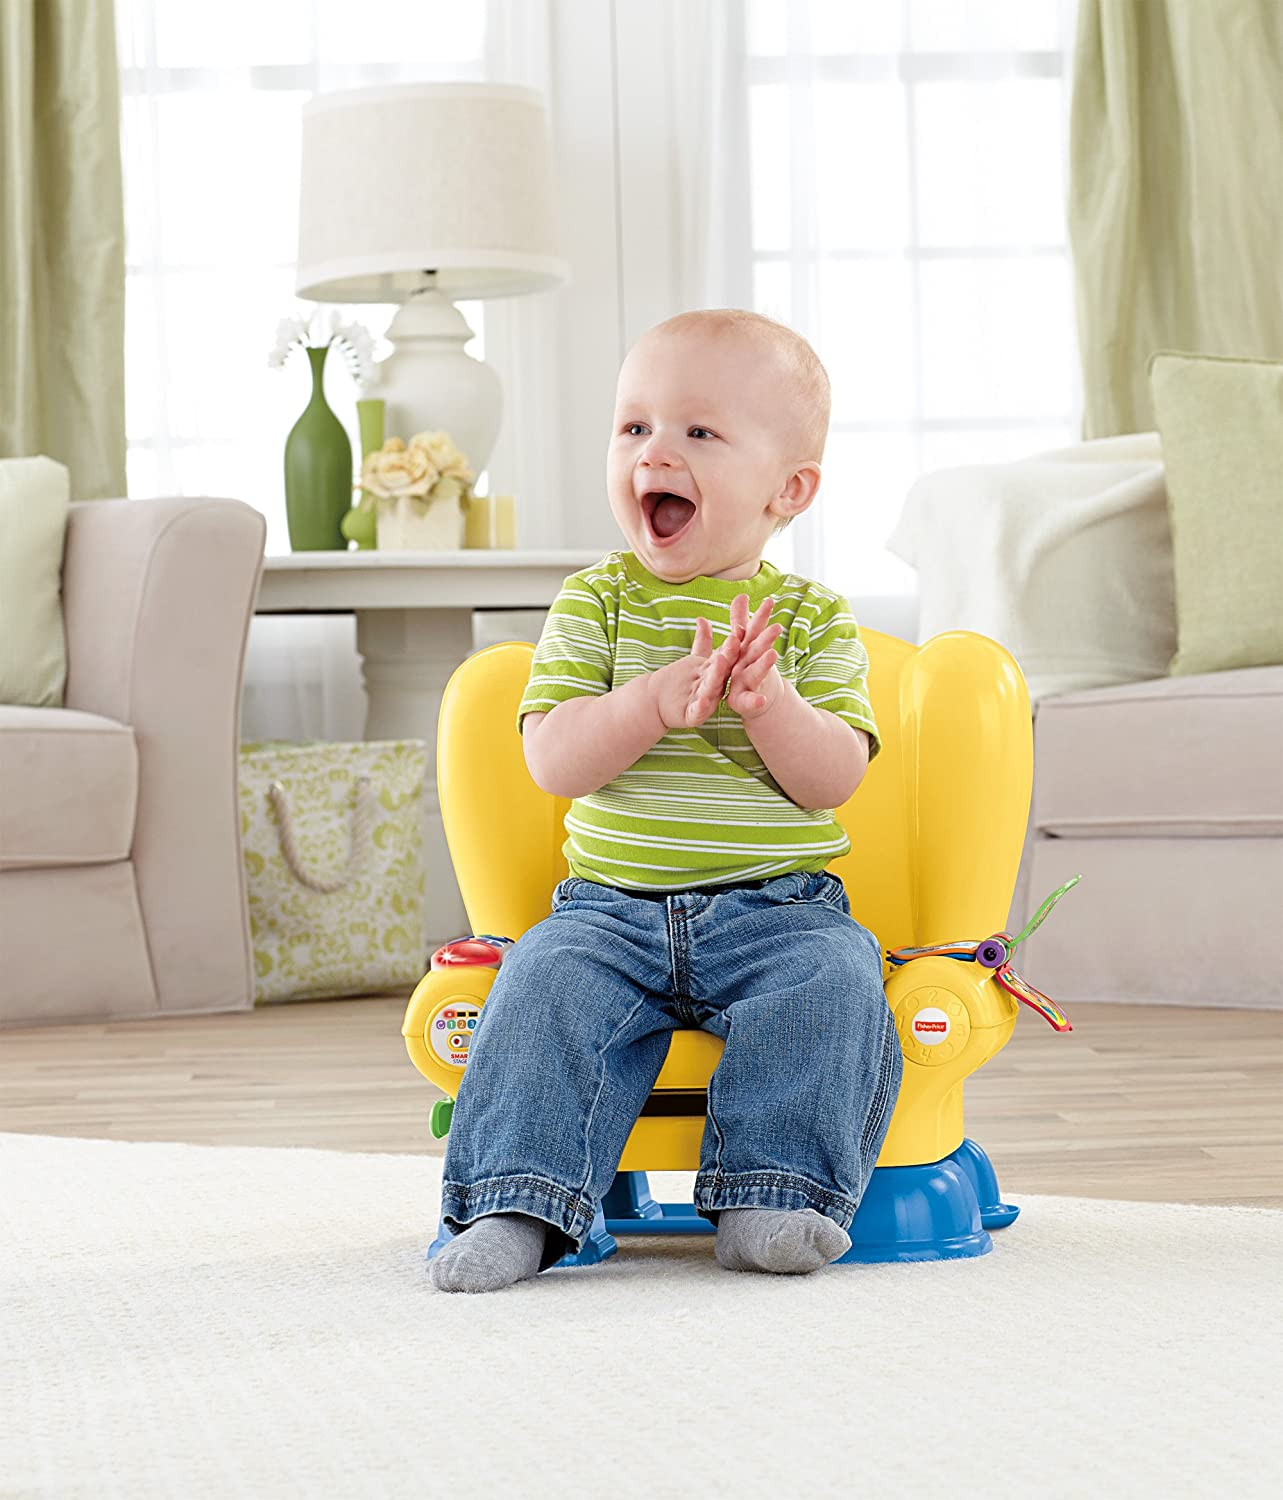 Fisher price smart stages chair - Fisher Price Smart Stages Chair 29